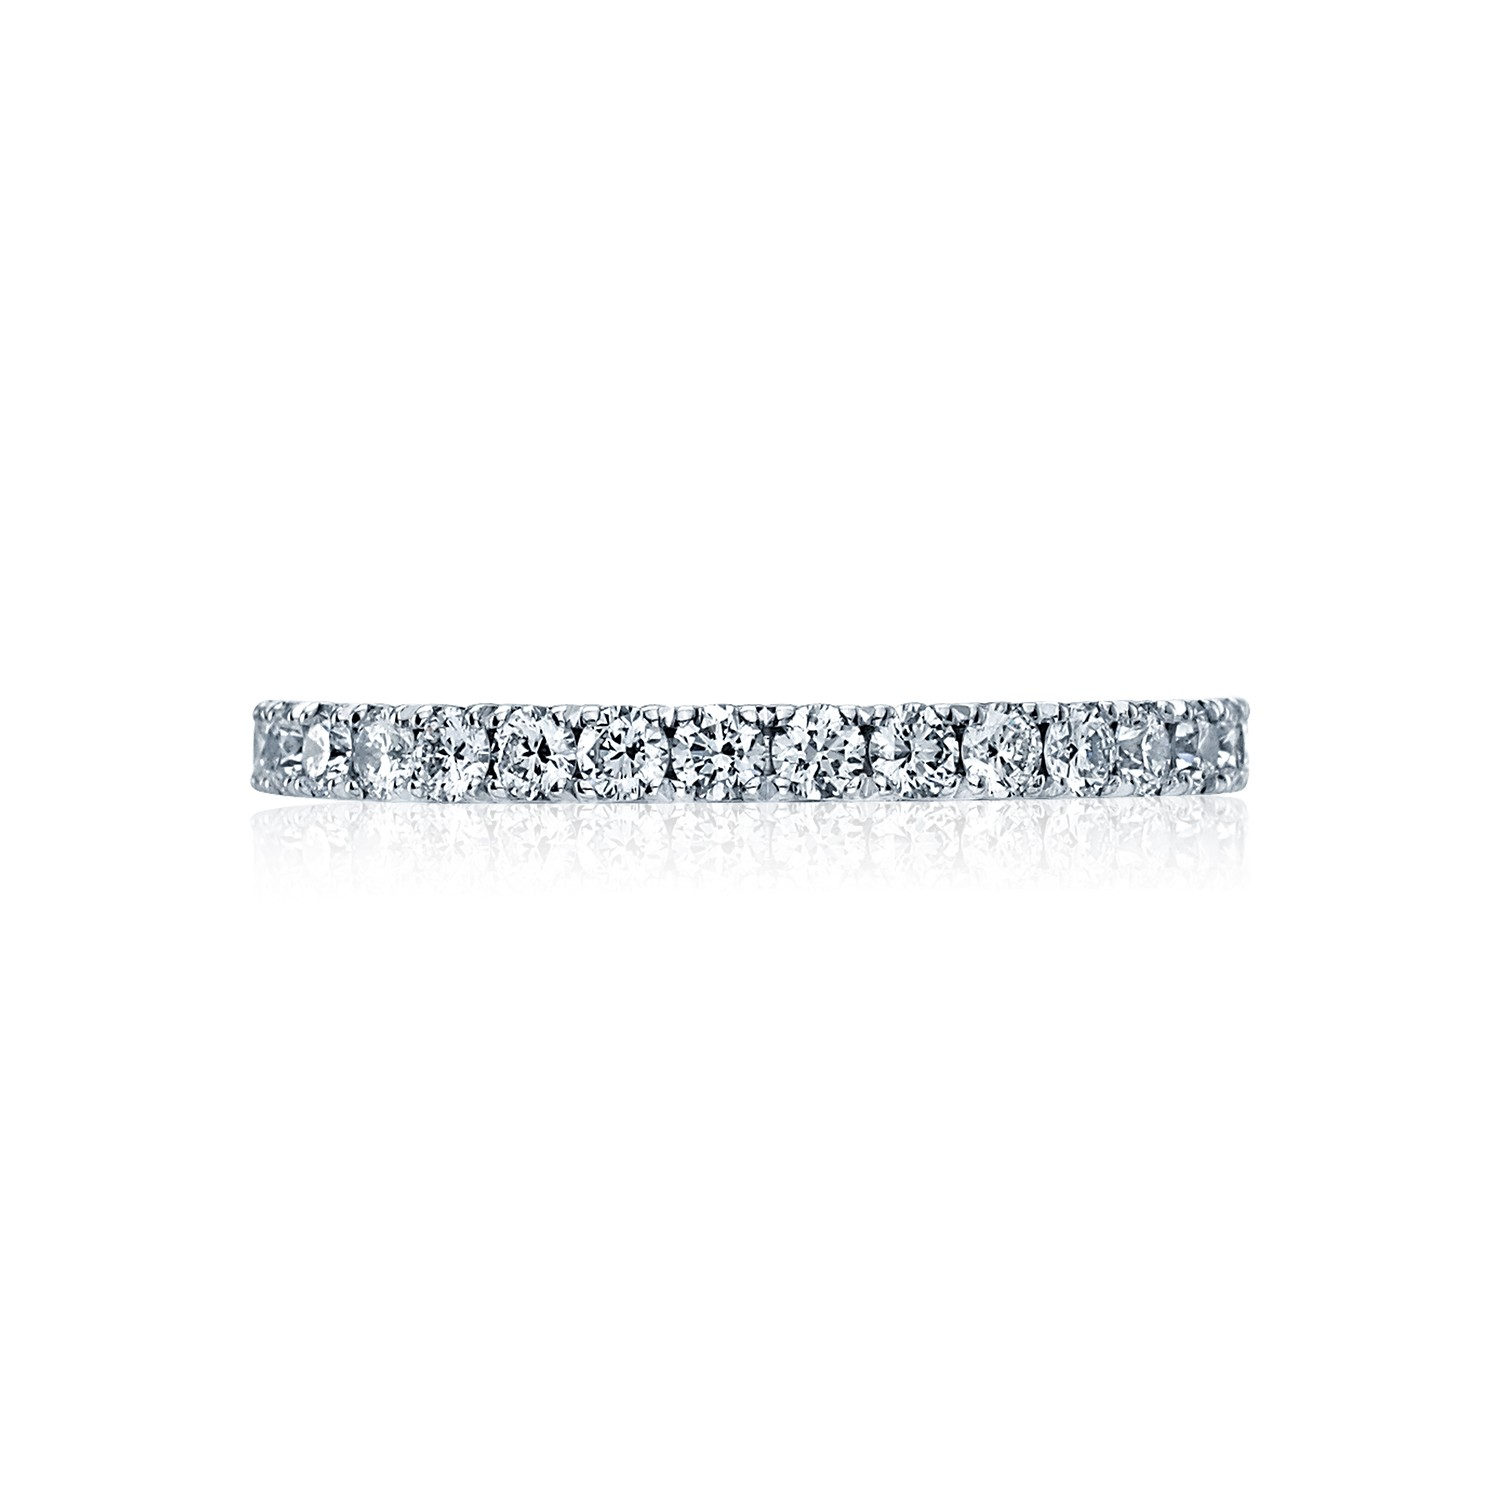 tacori royalt ht oval diamond wedding band tacori wedding band tacori wedding bands